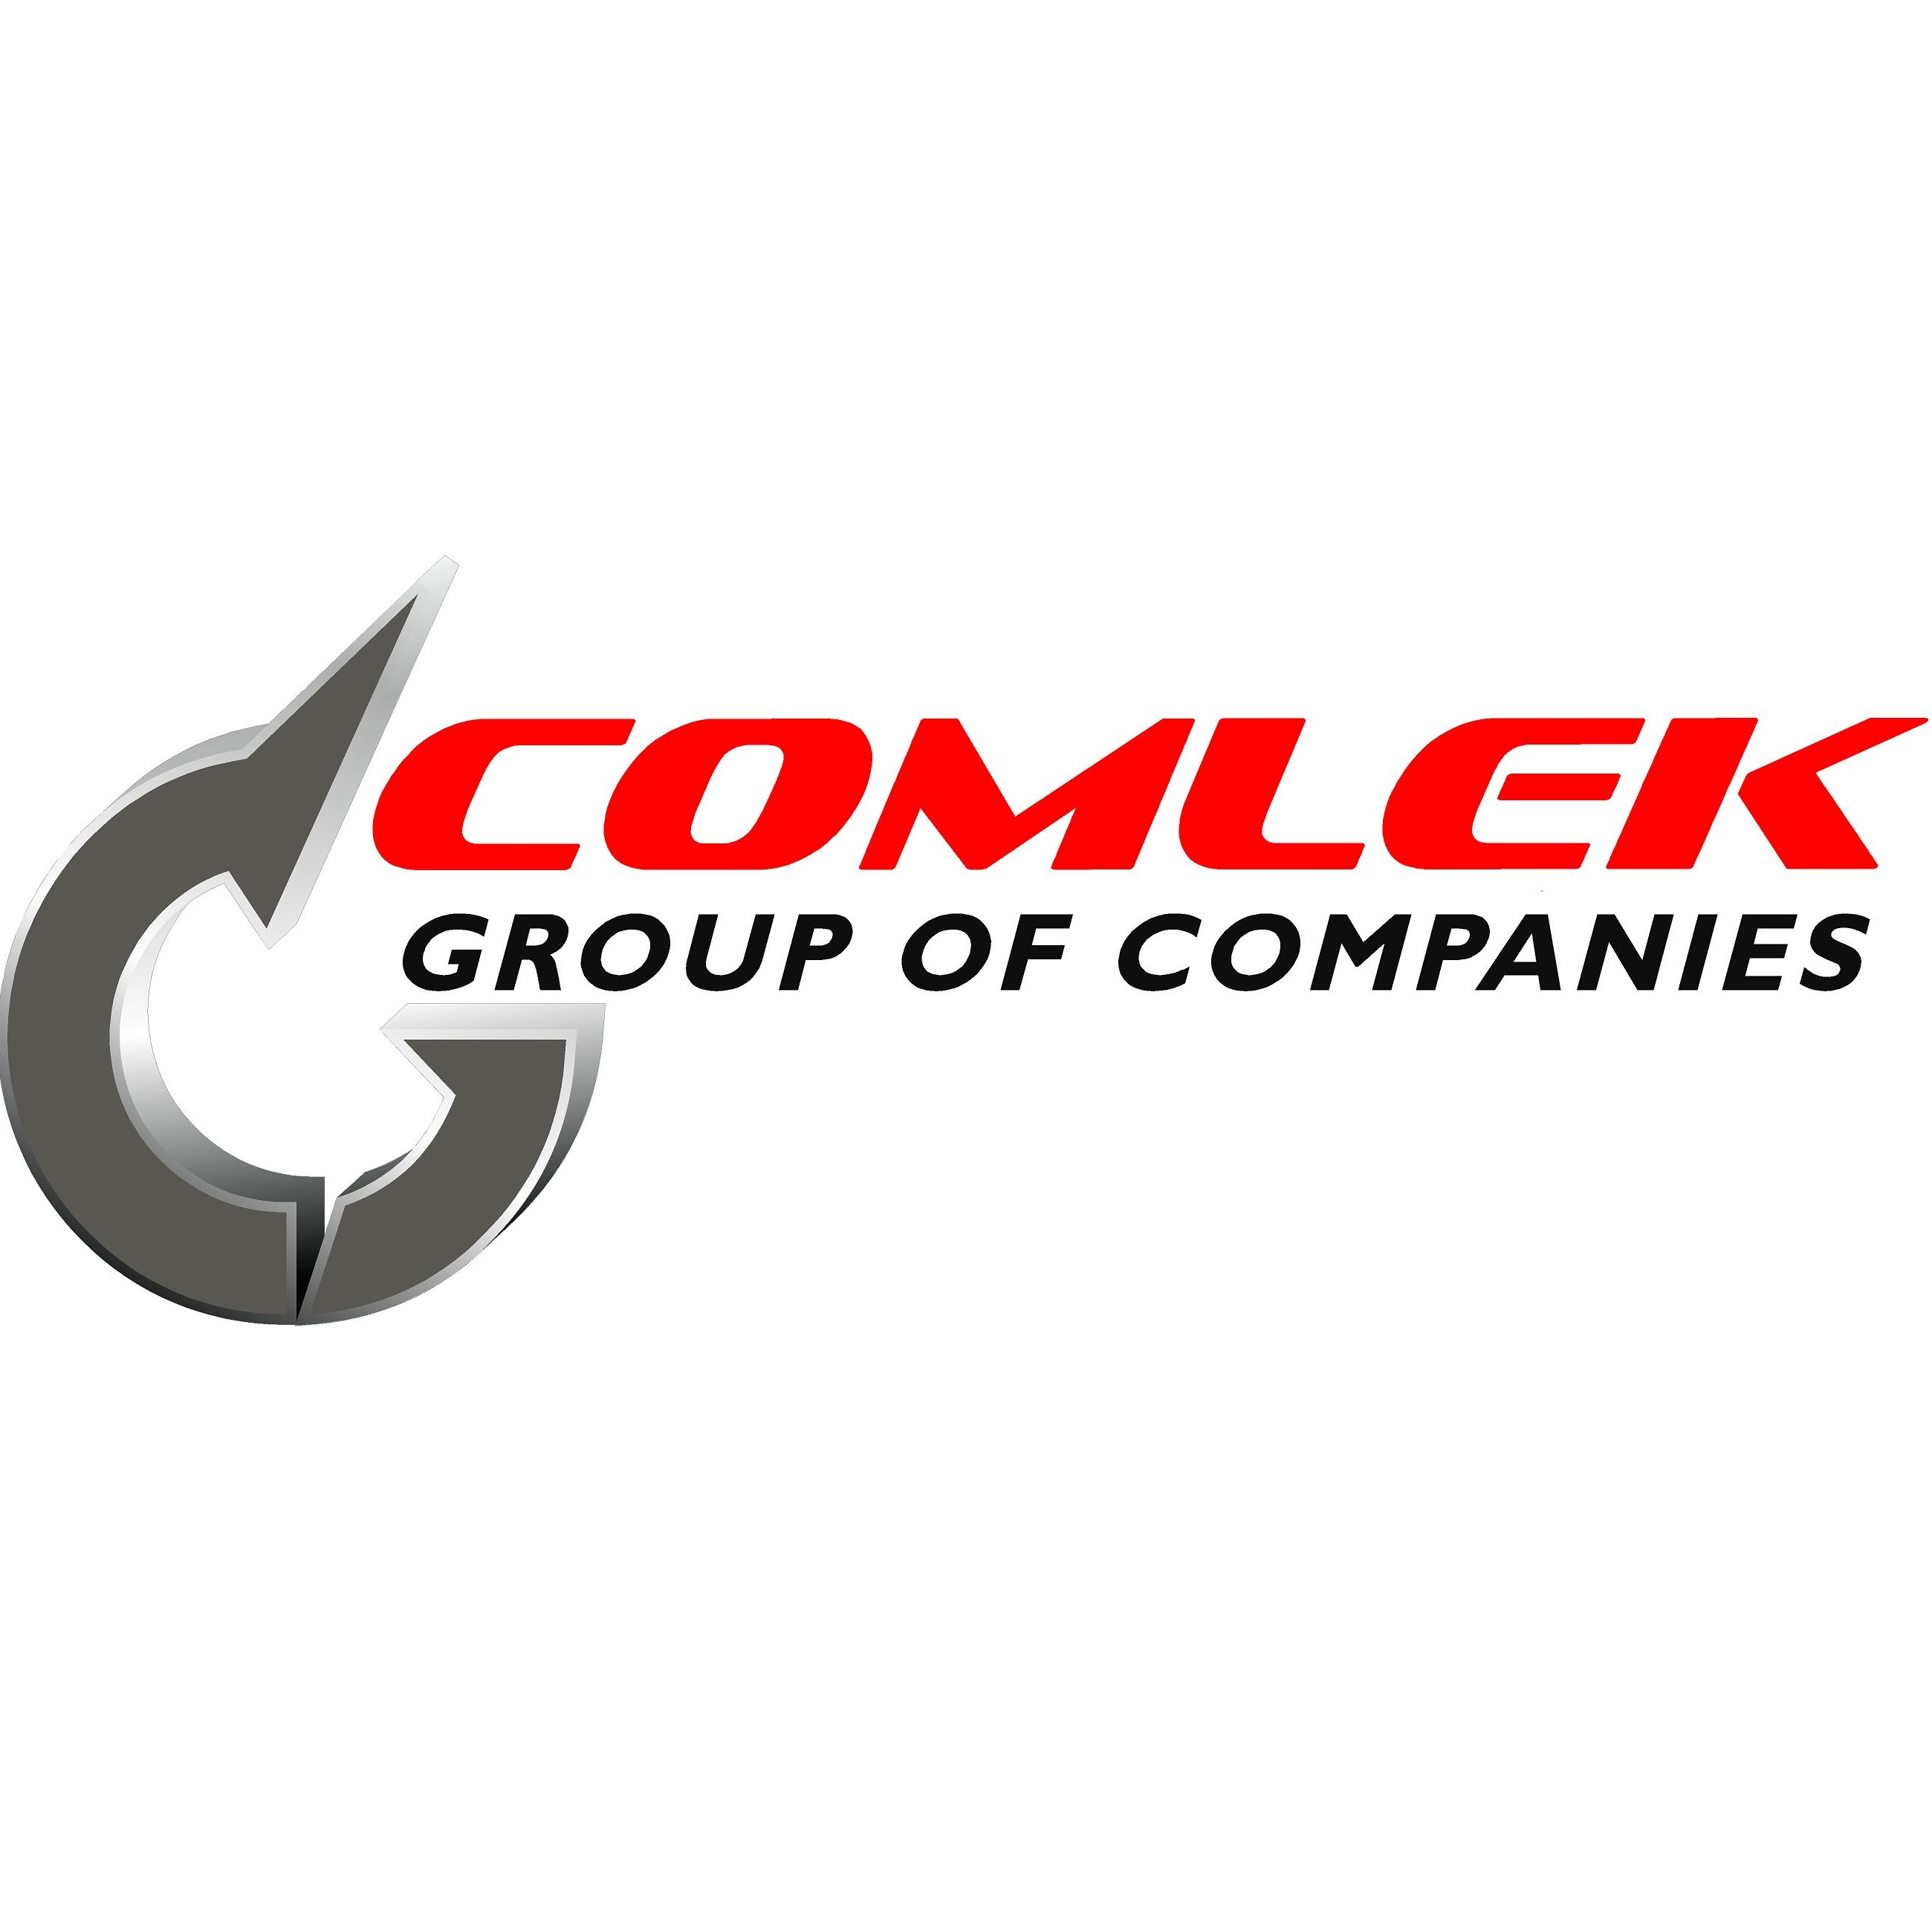 Comlek-Group-of-Companies